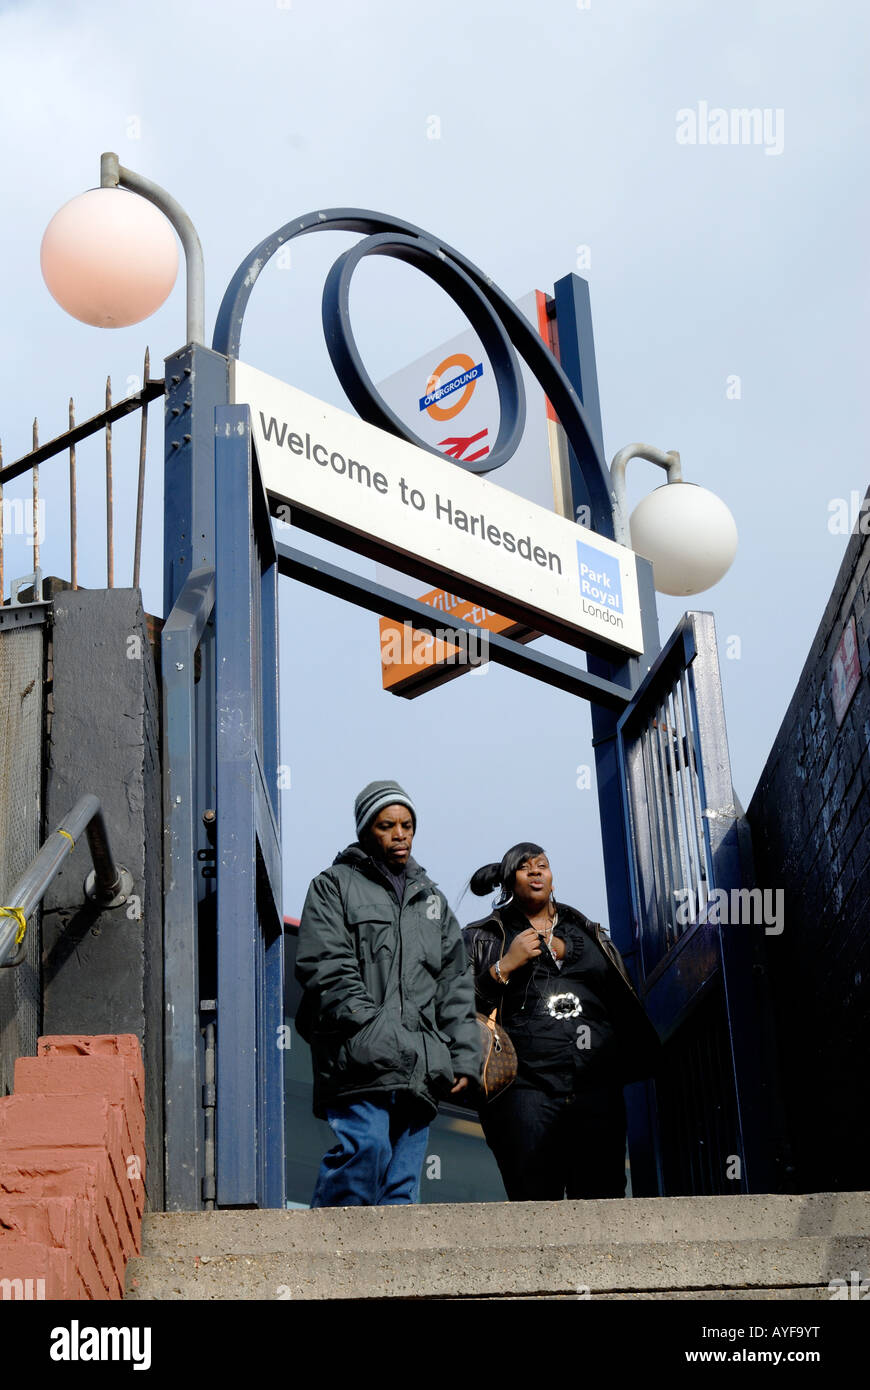 UK - LOCAL RESIDENTS ON WAY TO STATION IN WILLESDEN JUNCTION, HARLESDEN,LONDON Photo © Julio Etchart - Stock Image